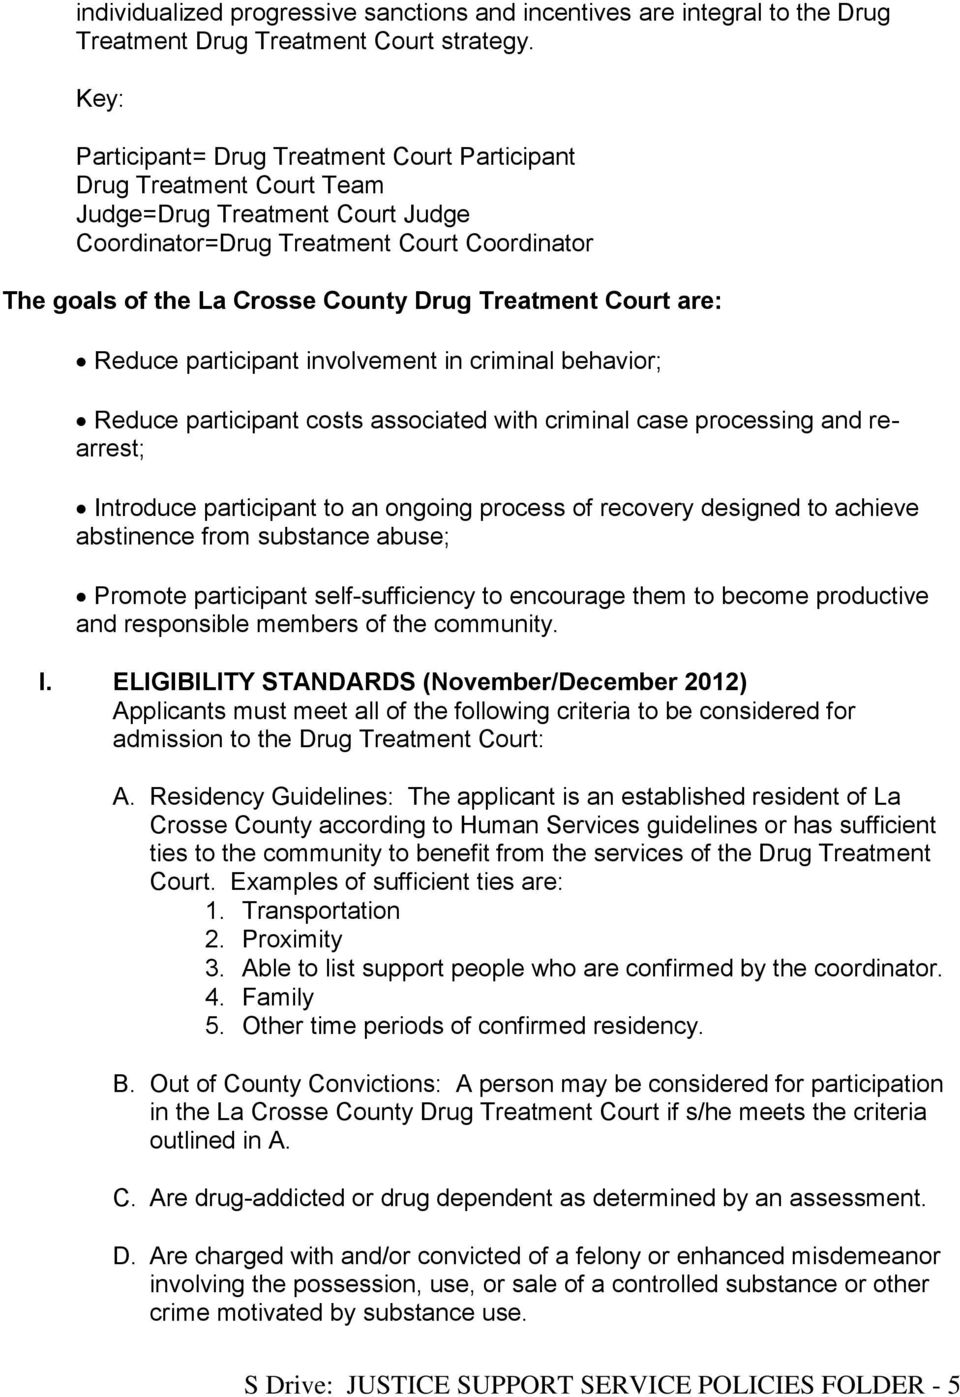 Treatment Court are: Reduce participant involvement in criminal behavior; Reduce participant costs associated with criminal case processing and rearrest; Introduce participant to an ongoing process